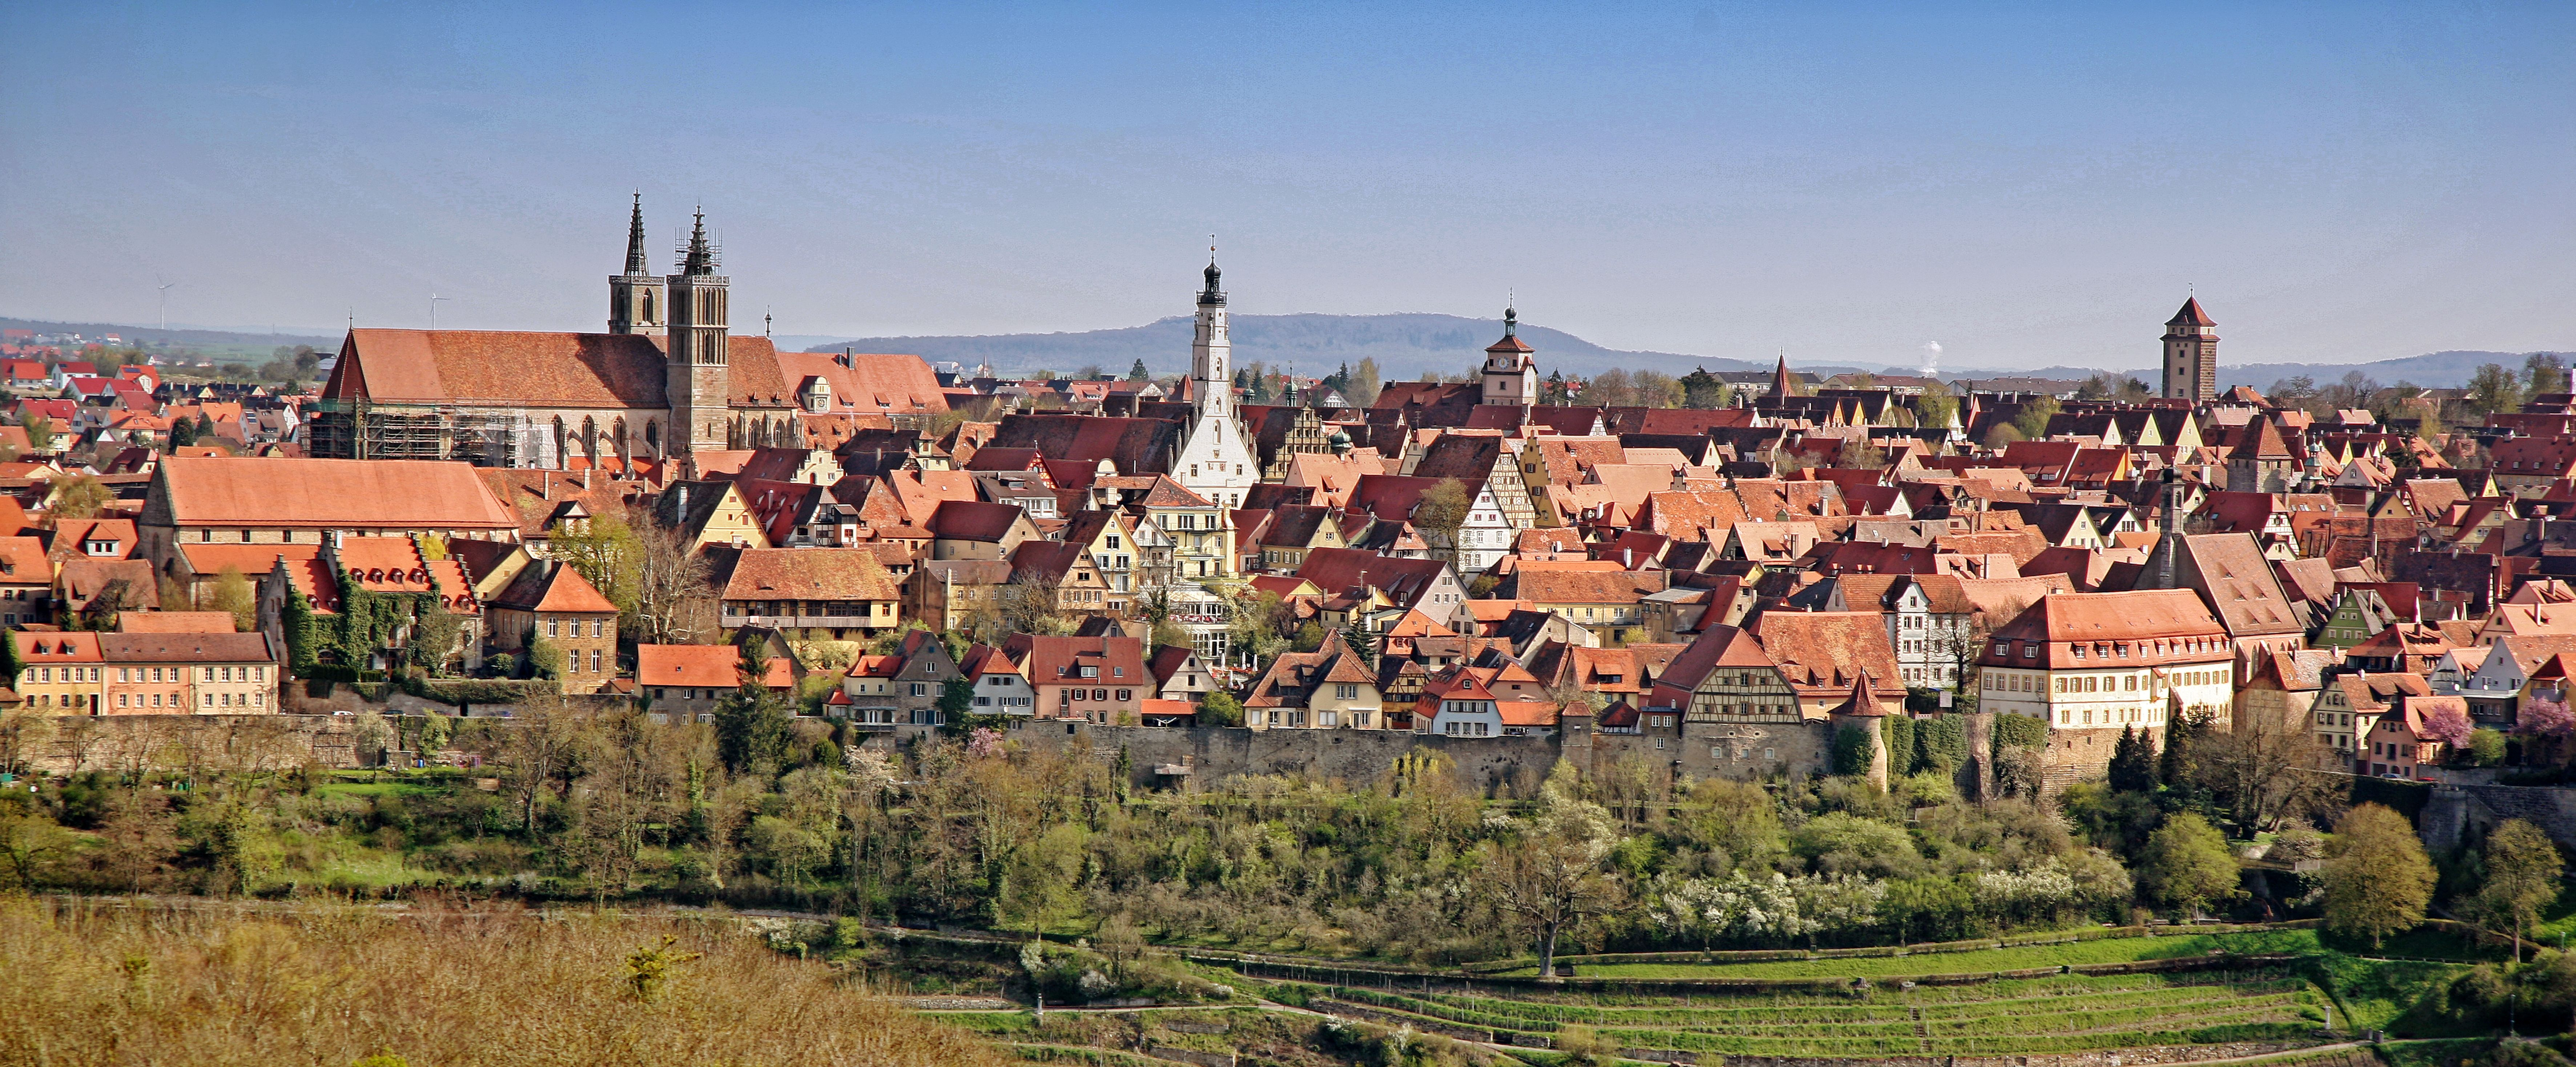 Tourismus in Rothenburg ob der Tauber